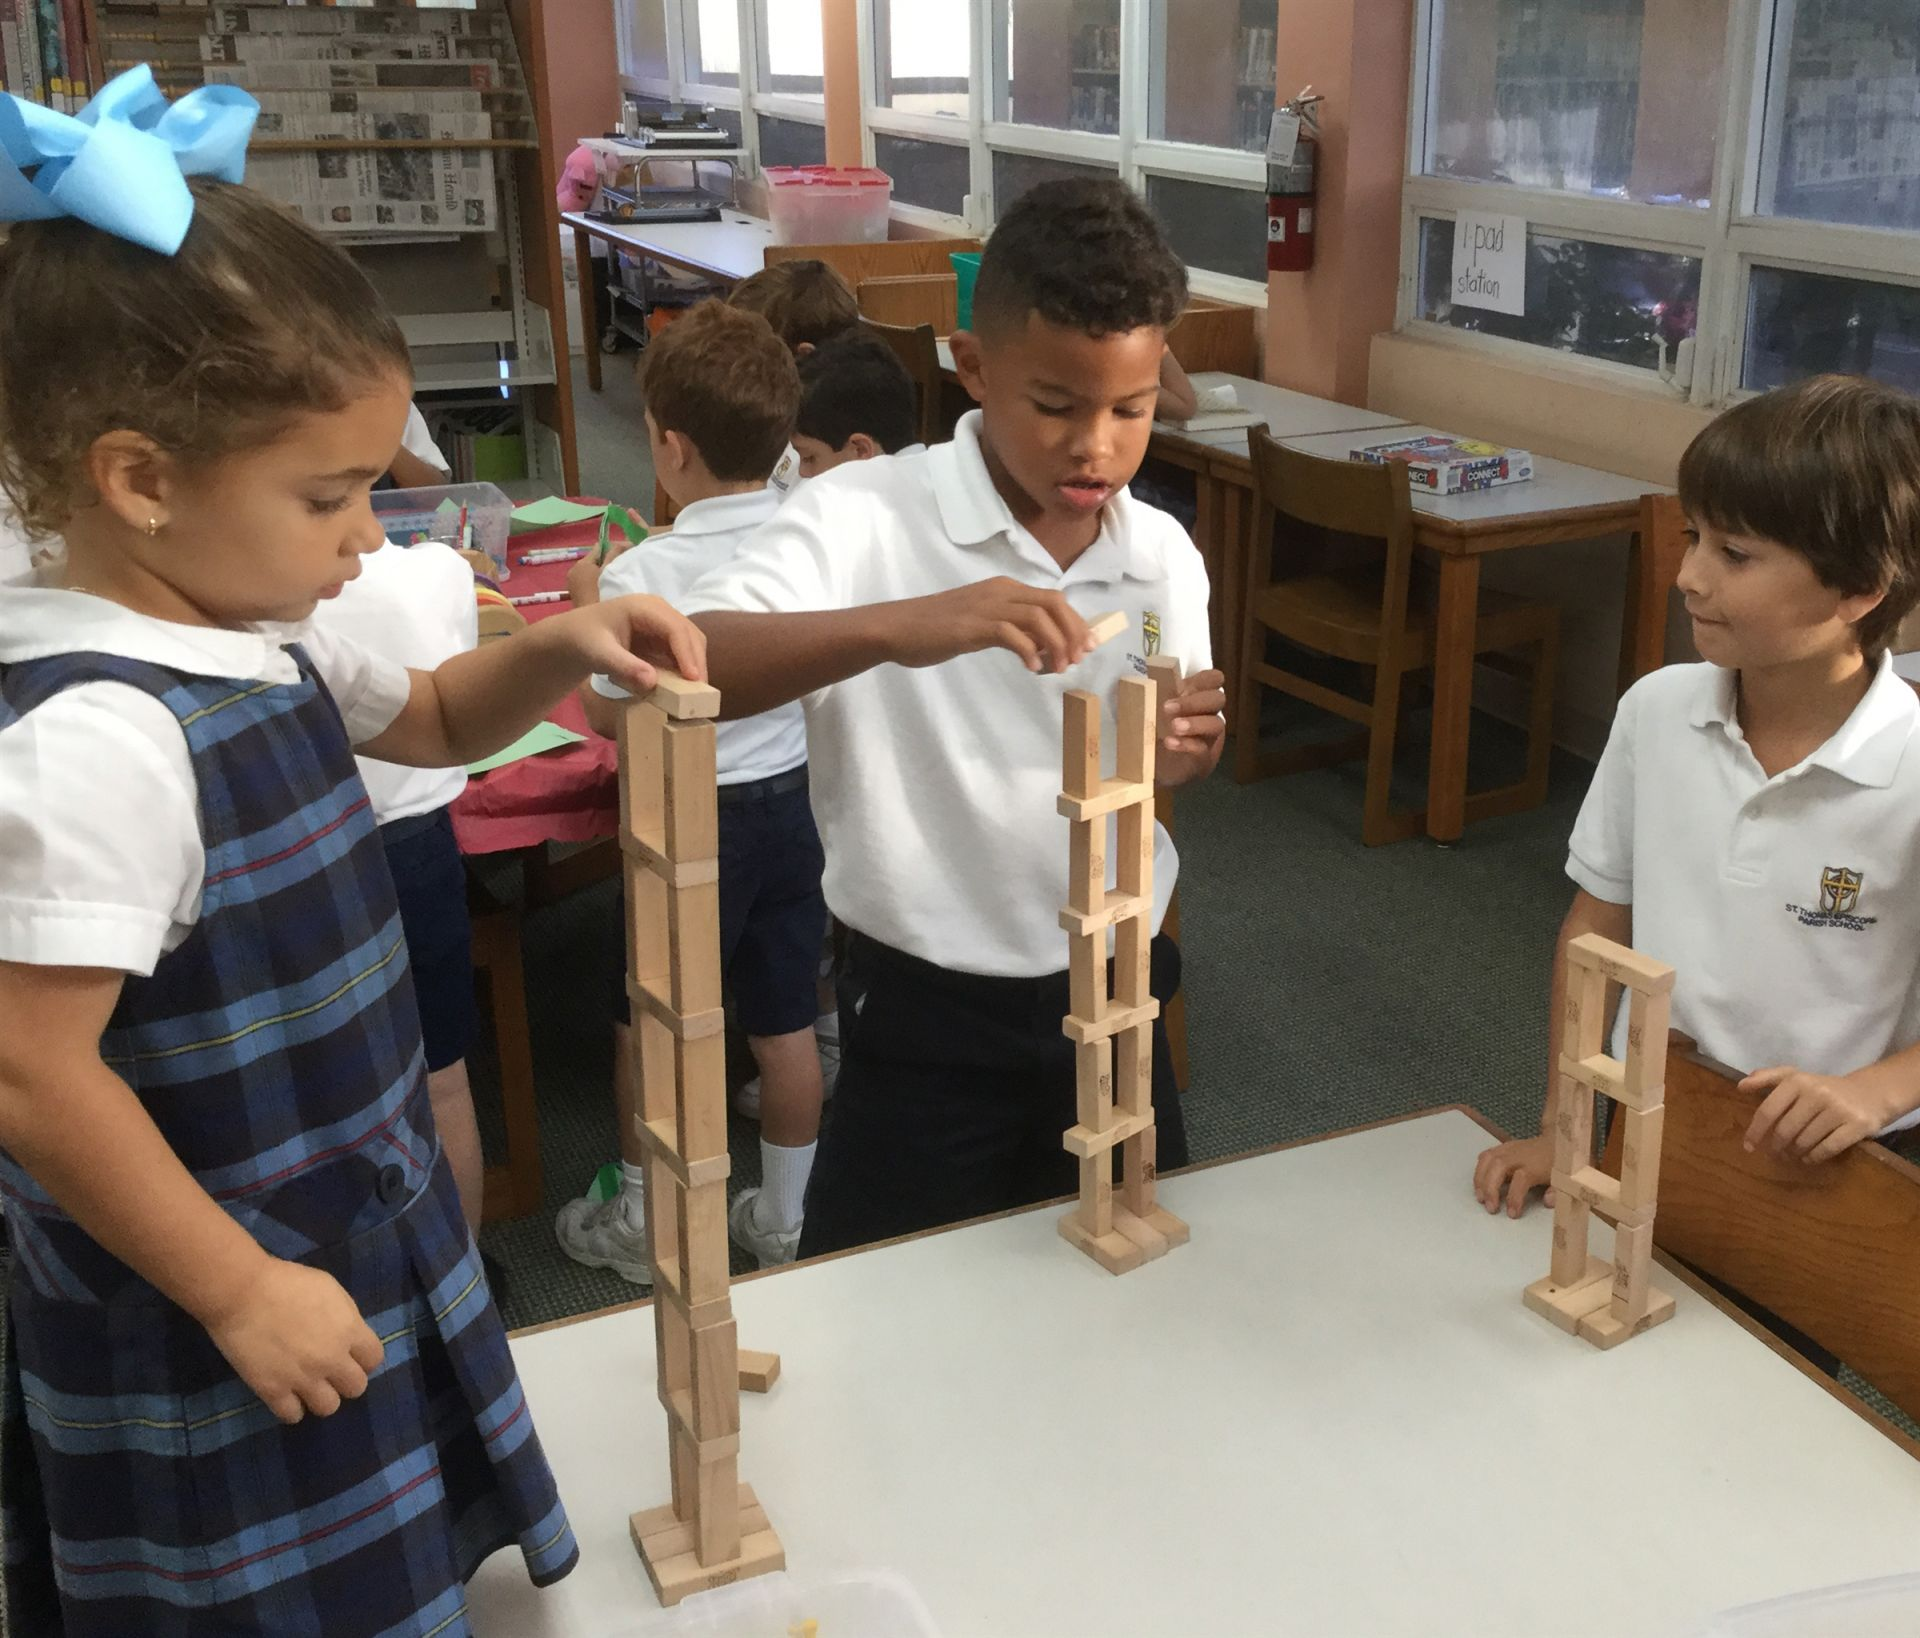 Building structures in the exploratorium